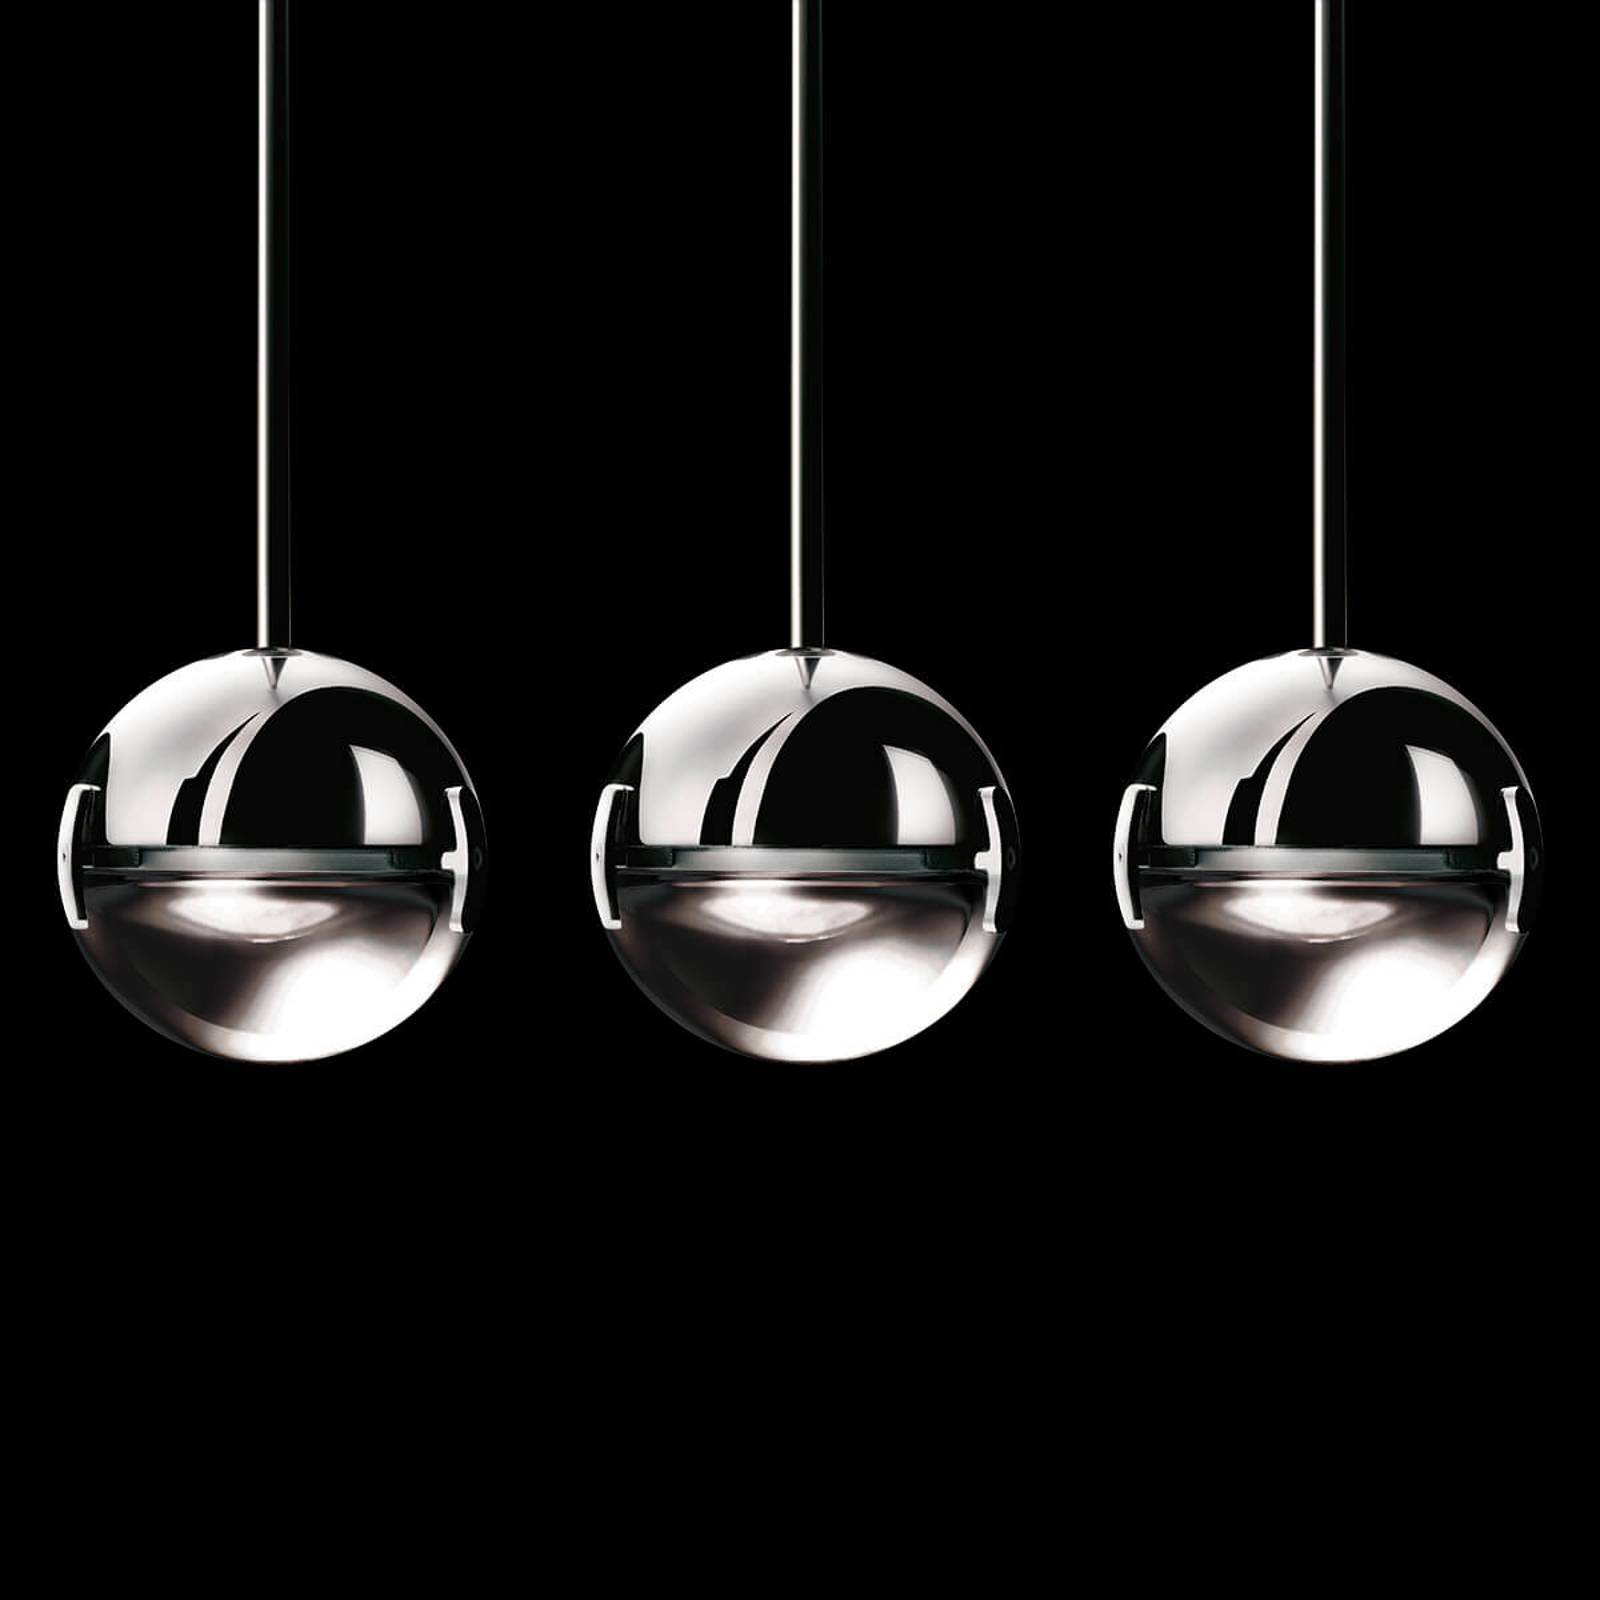 Stylish designer LED hanging light Convivio clear from Cini & Nils